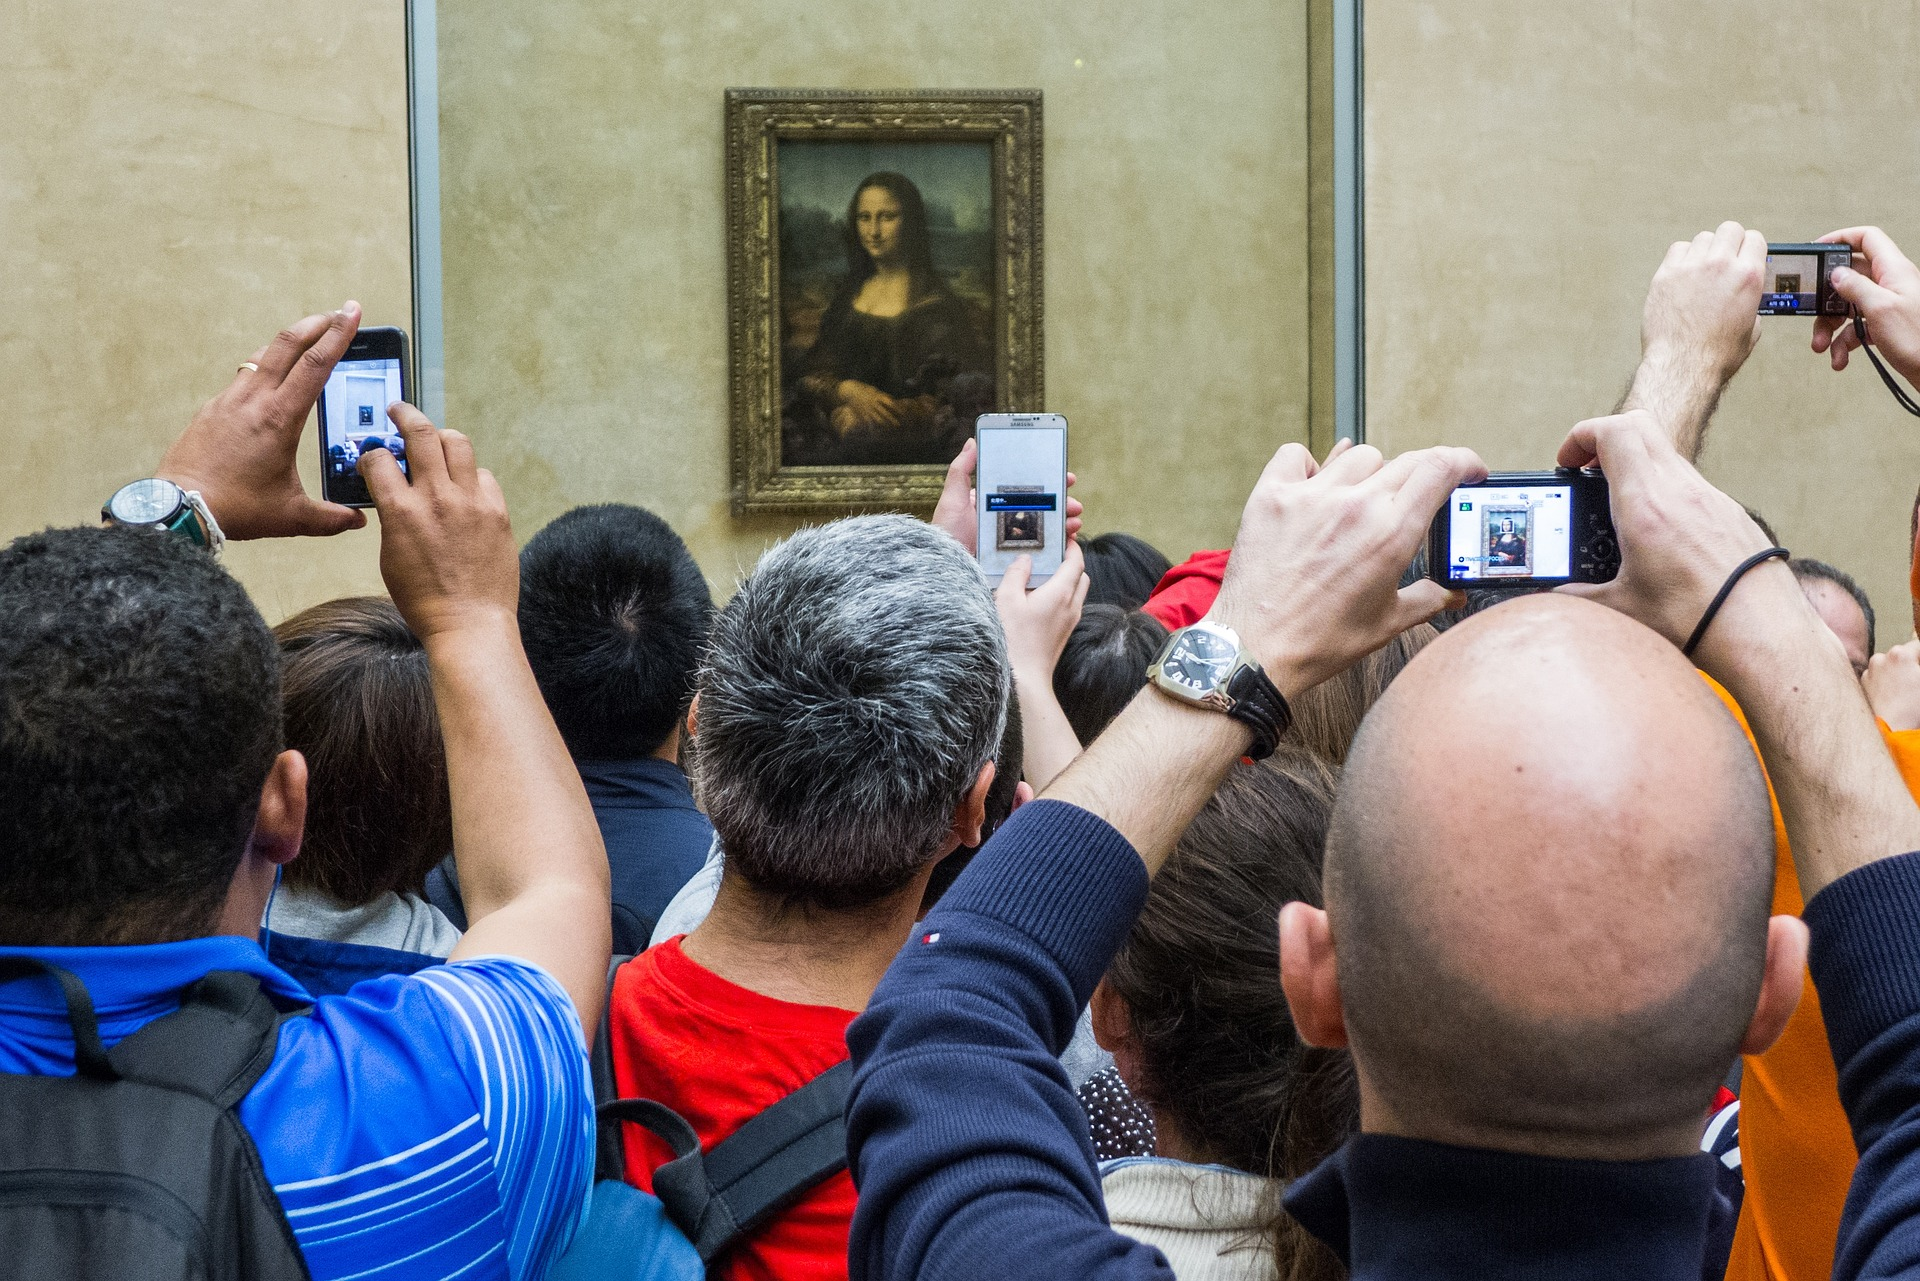 Crowds taking photos of Mona Lisa at the Louvre, Paris